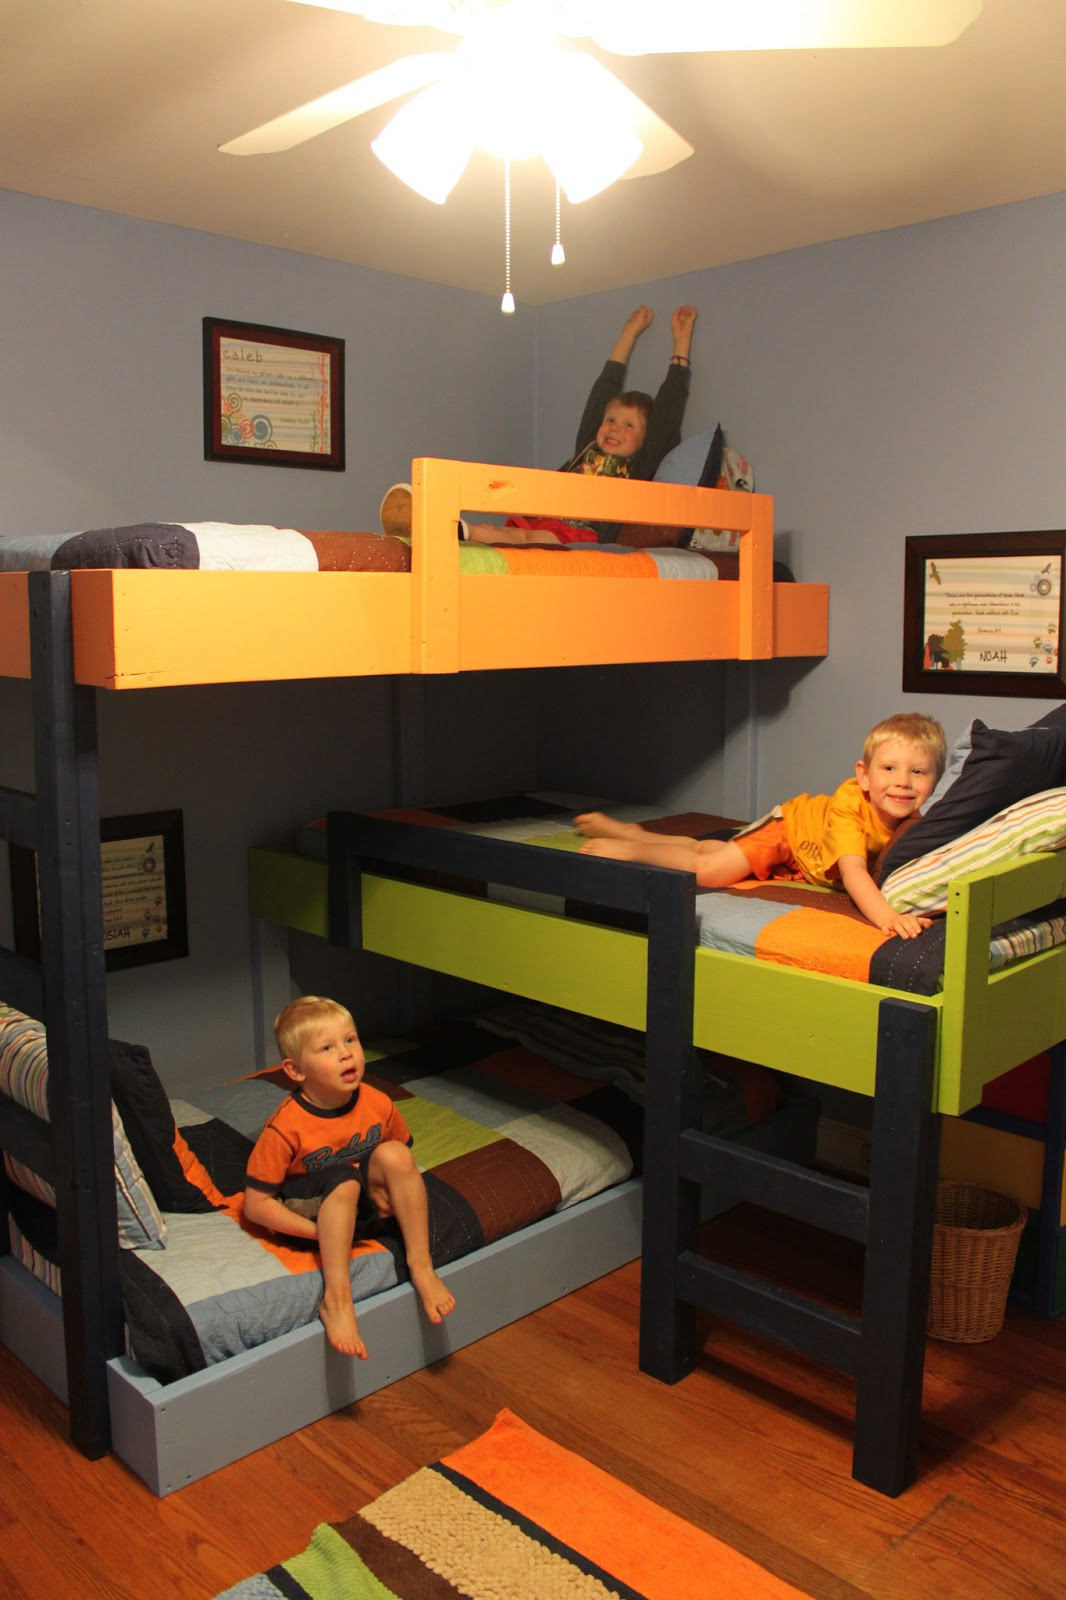 Little Things Triple Bunk Beds And Hardwood Floors: bunk bed boys room